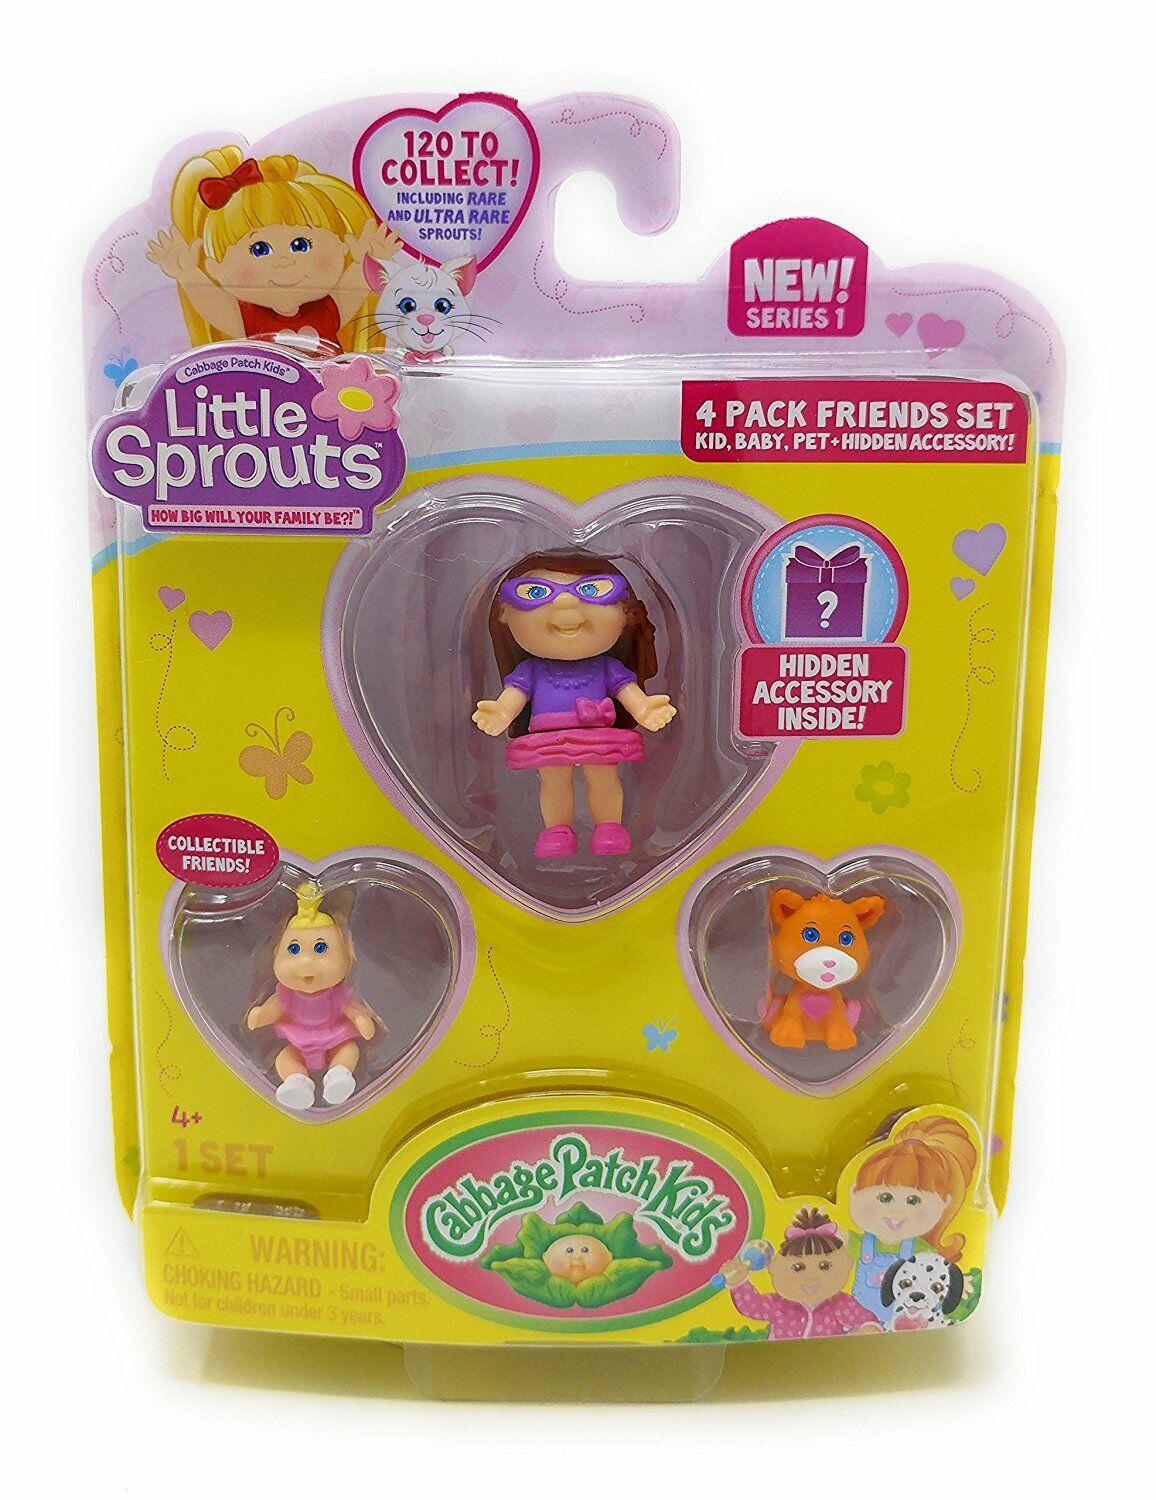 3 Little Sprouts Cabbage Patch Kids collectible friends inside 120 to collect!